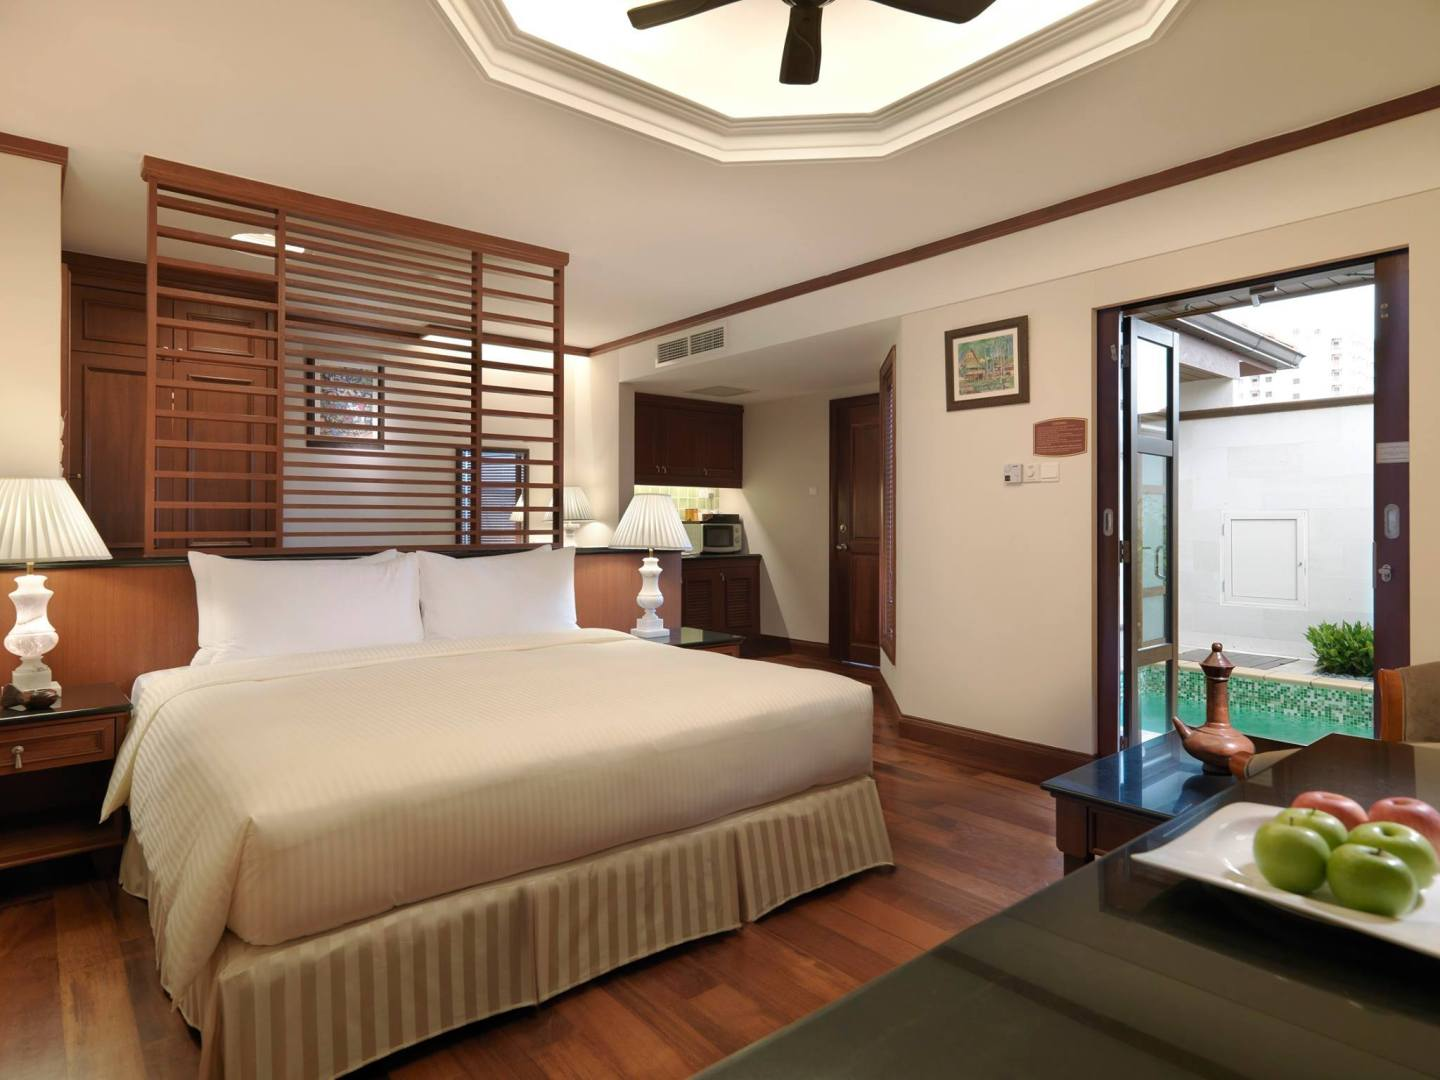 Image from Grand Lexis Port Dickson